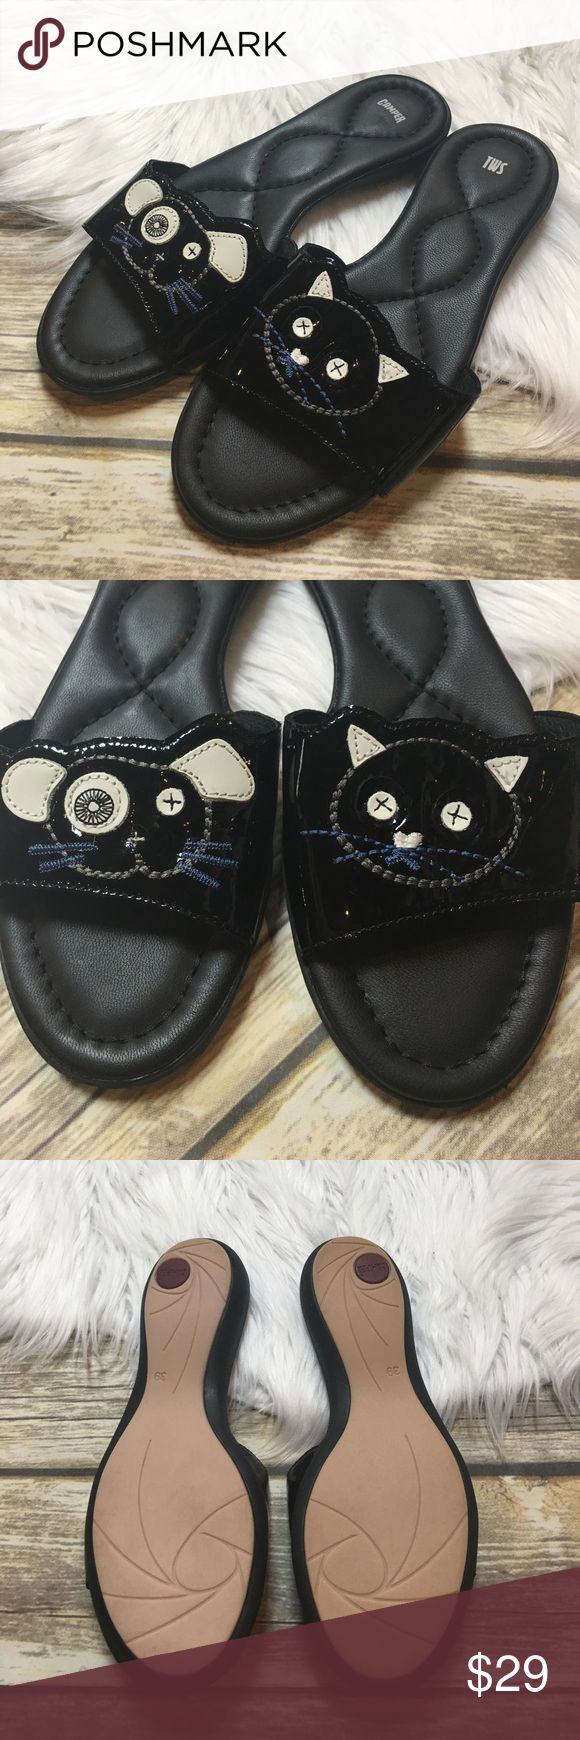 Camper Twins Collection Dog & Cat Slide Sandals Camper slip on sandals. Part of the twins collection with a dog and cat. Cushioned leather sole. In great preowned condition. Size 39 is equivalent to US size 9. Fit snug, could almost pass as a 8 1/2. Camper Shoes Sandals